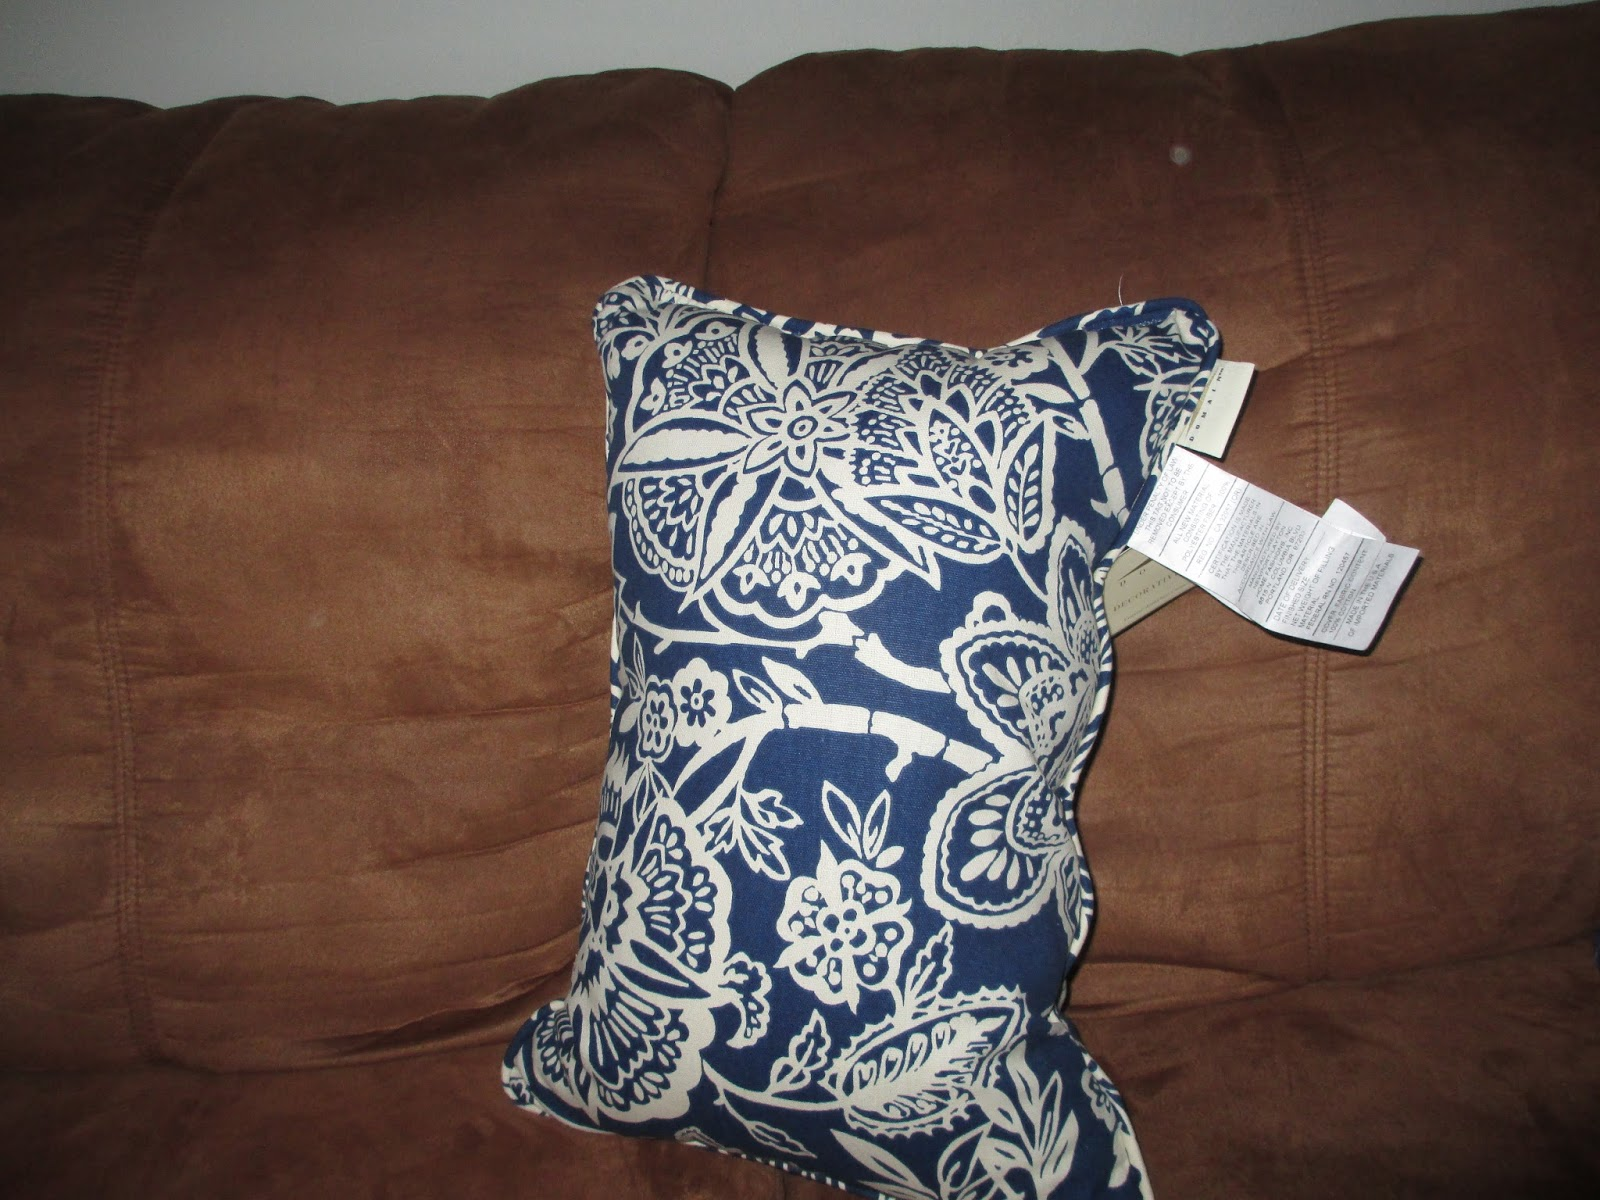 Throw Pillows At Tj Maxx : BerryMorins Bits and Tips: I Really Do Love TJ Maxx!